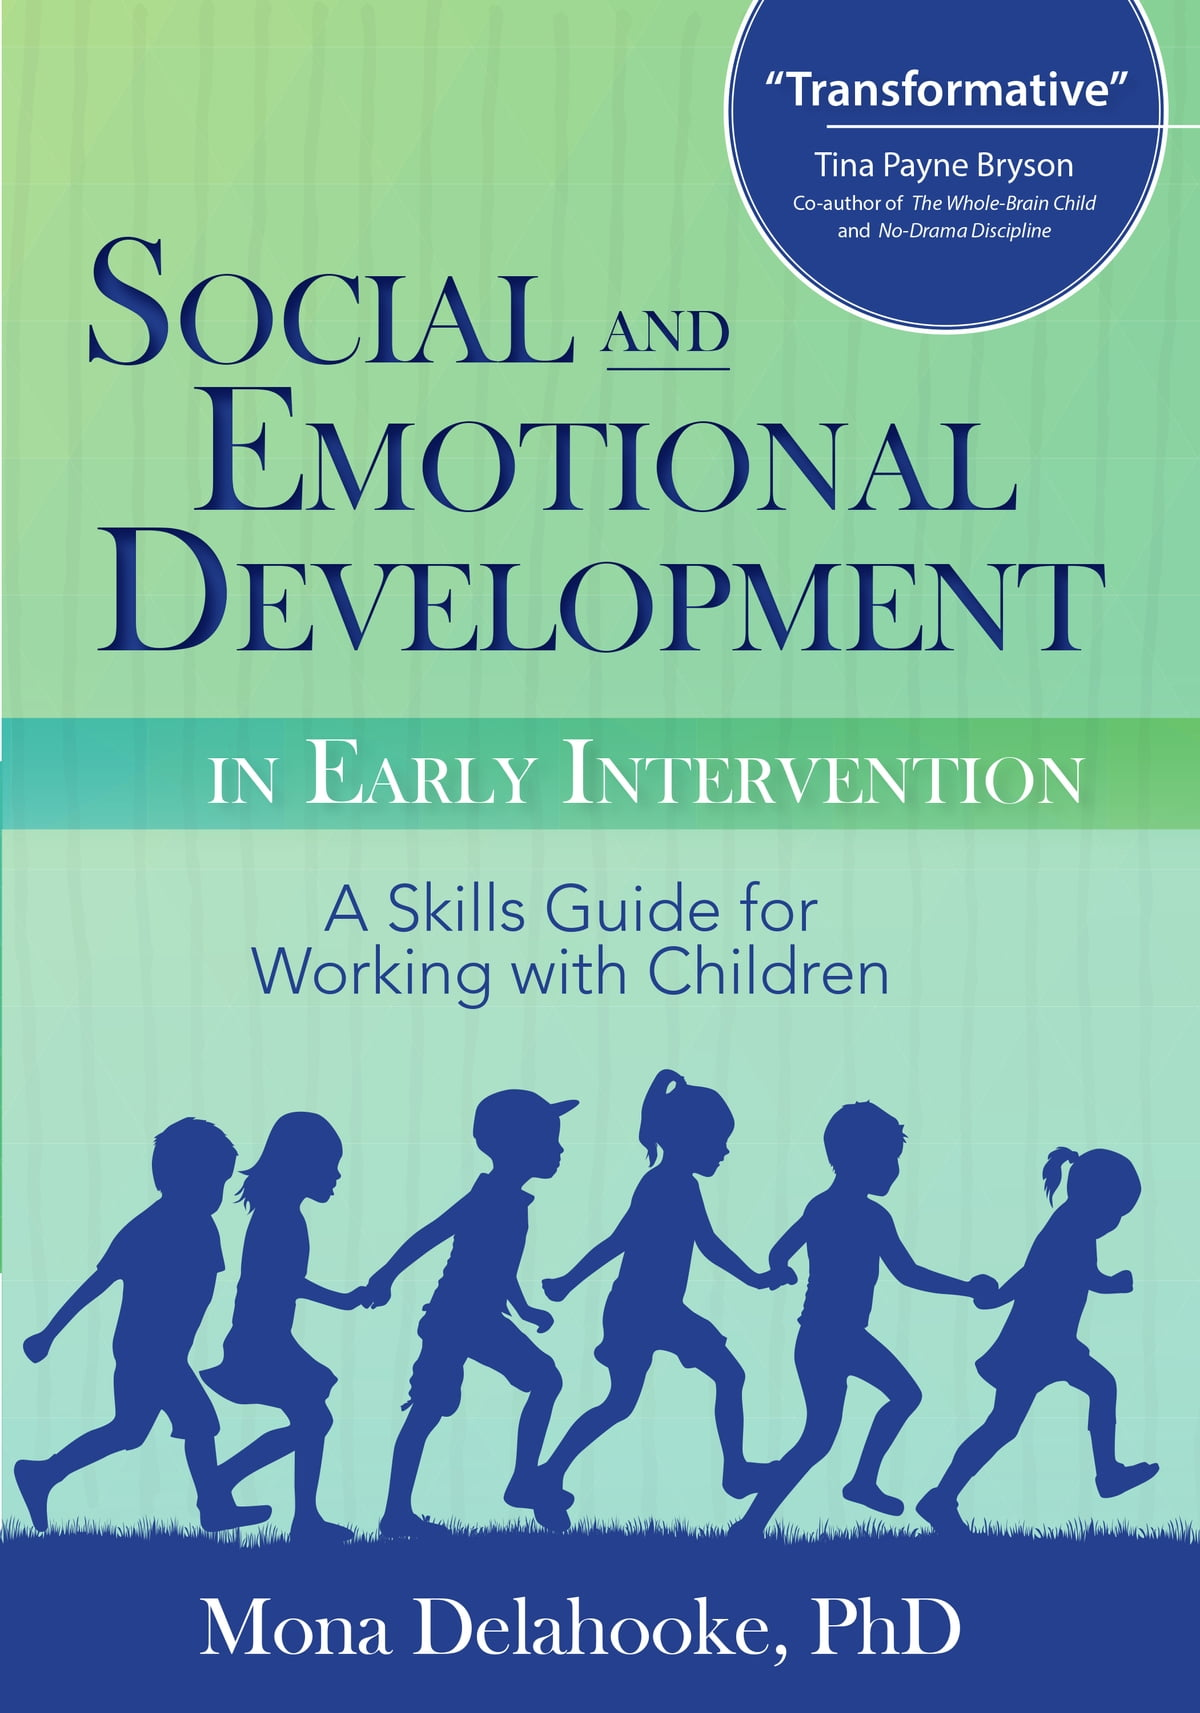 moral development and aggression in children Individual differences in prototypical moral and conventional judgments and children's proactive and reactive aggression marc jambon and judith g smetana.